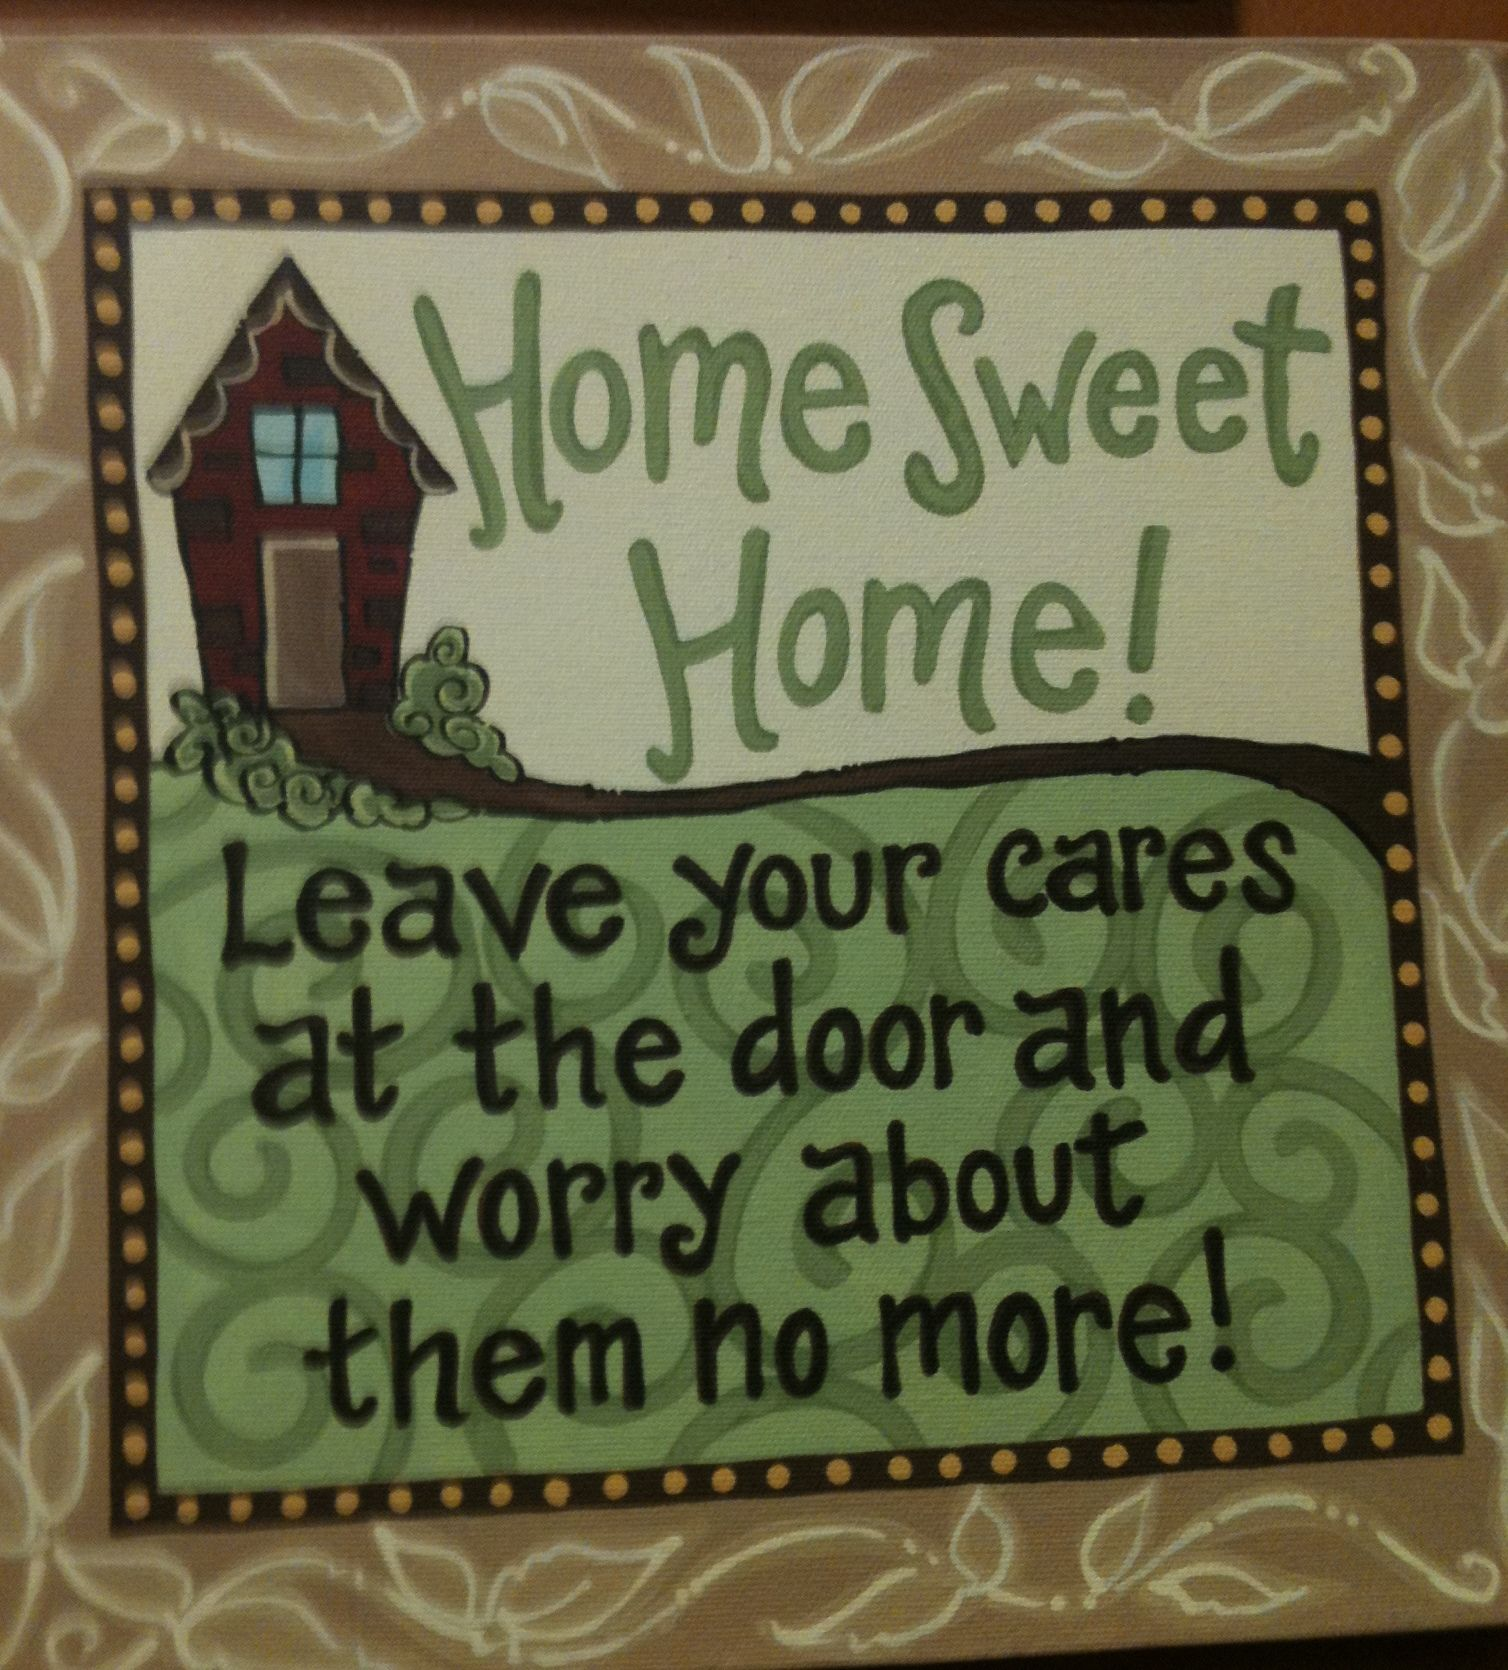 Coming home quotes and sayings quotesgram for Home sweet home quotes